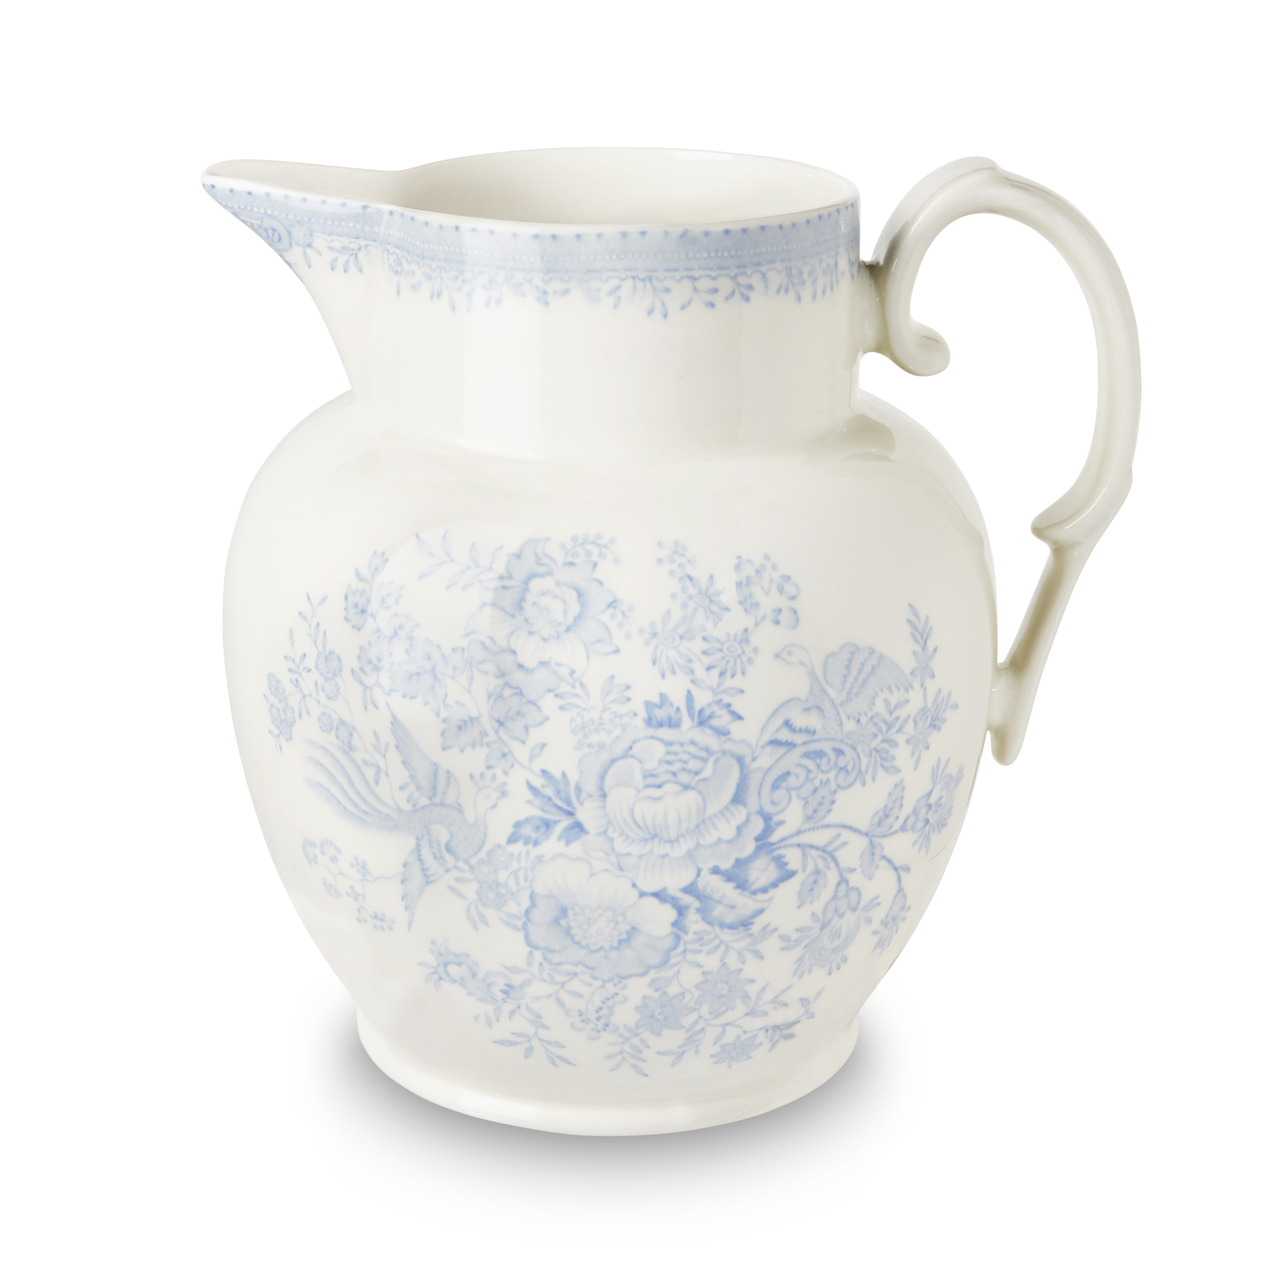 Burleigh Blue Asiatic Pheasants   Beautiful china to adorn your tablescapes and add to your Sasha Nicholas wedding & gift registry